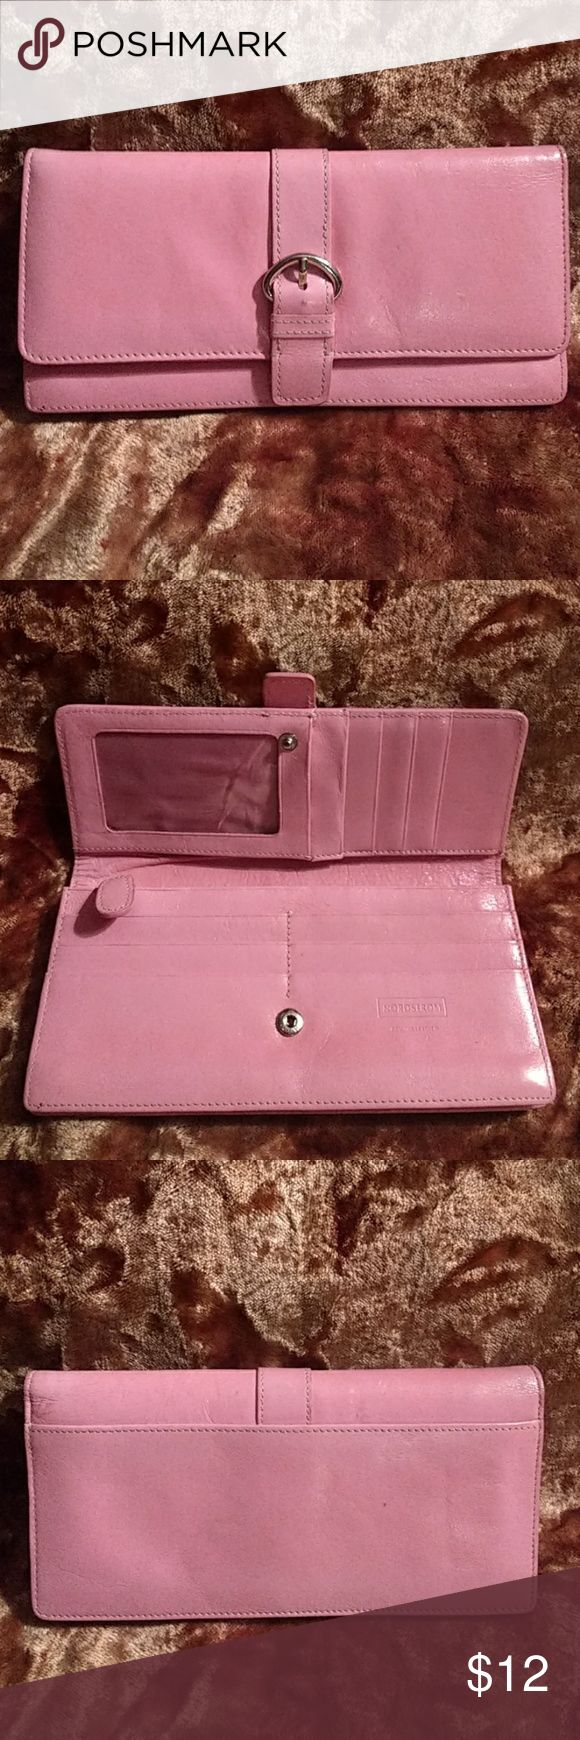 Pink Leather Nordstrom's Wallet Really Cute Great Looking wallet, Credit Card slots,ID window. zip change holder Pocket on back. Snap, Silver buckle strap design detail.Last picture shows repair. Used Good Condition. Nordstrom Bags Wallets